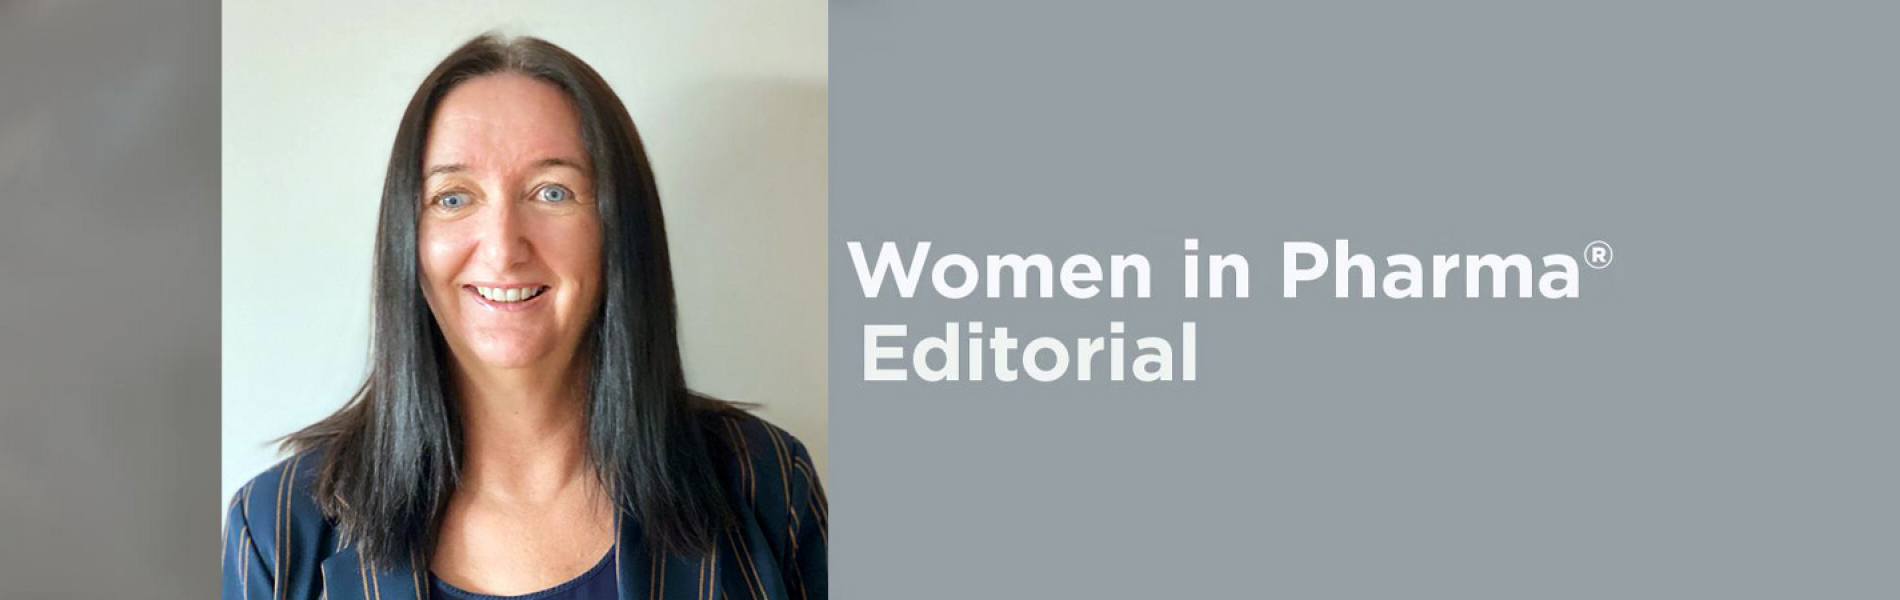 Women in Pharma® Editorial: Alice Redmond